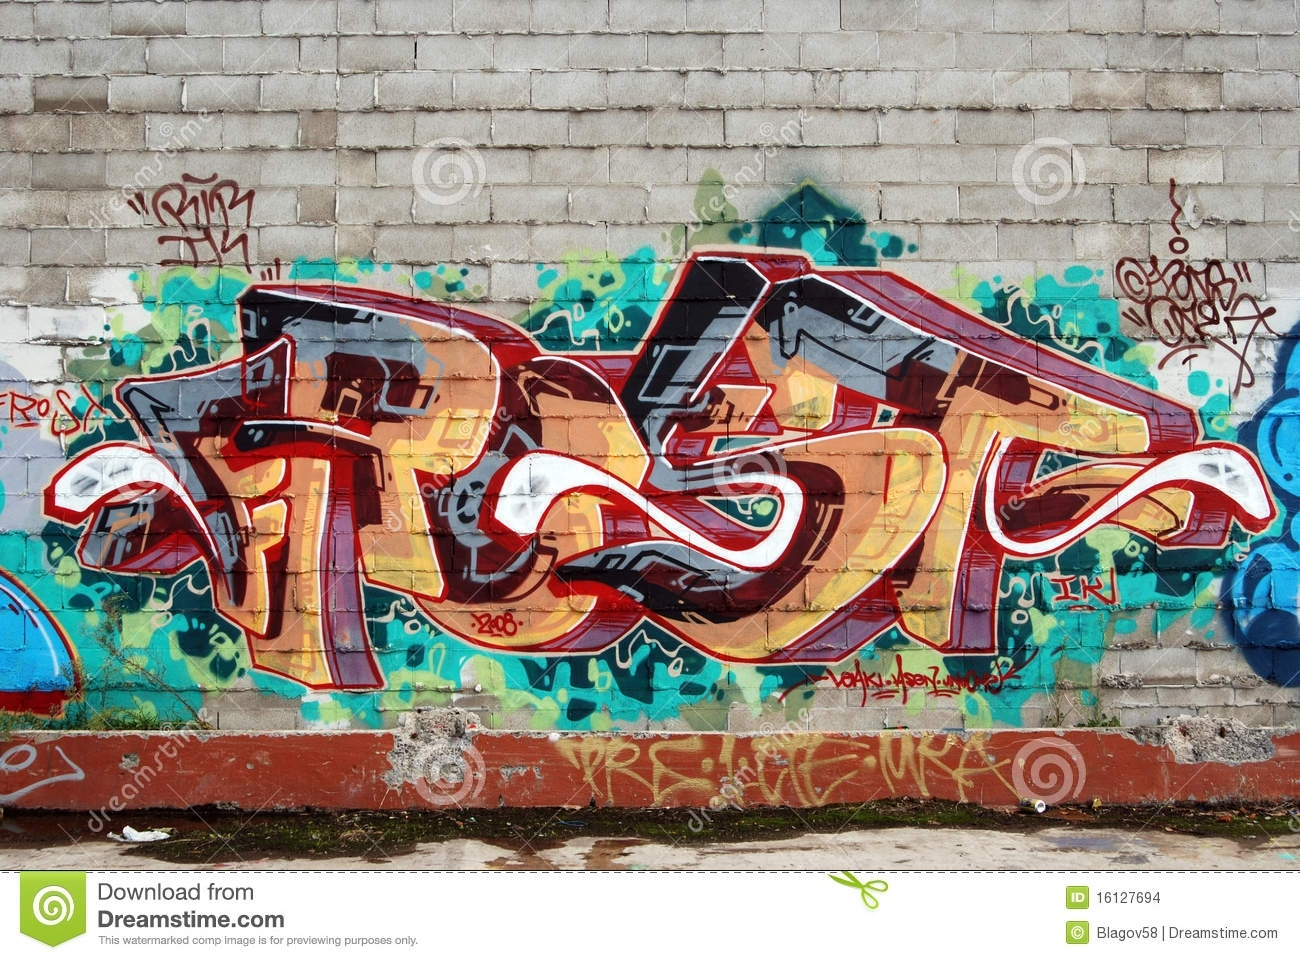 A Wall Vandalized With Street Graffiti Art Stock Photo – Image Of Throughout Latest Abstract Graffiti Wall Art (View 7 of 20)